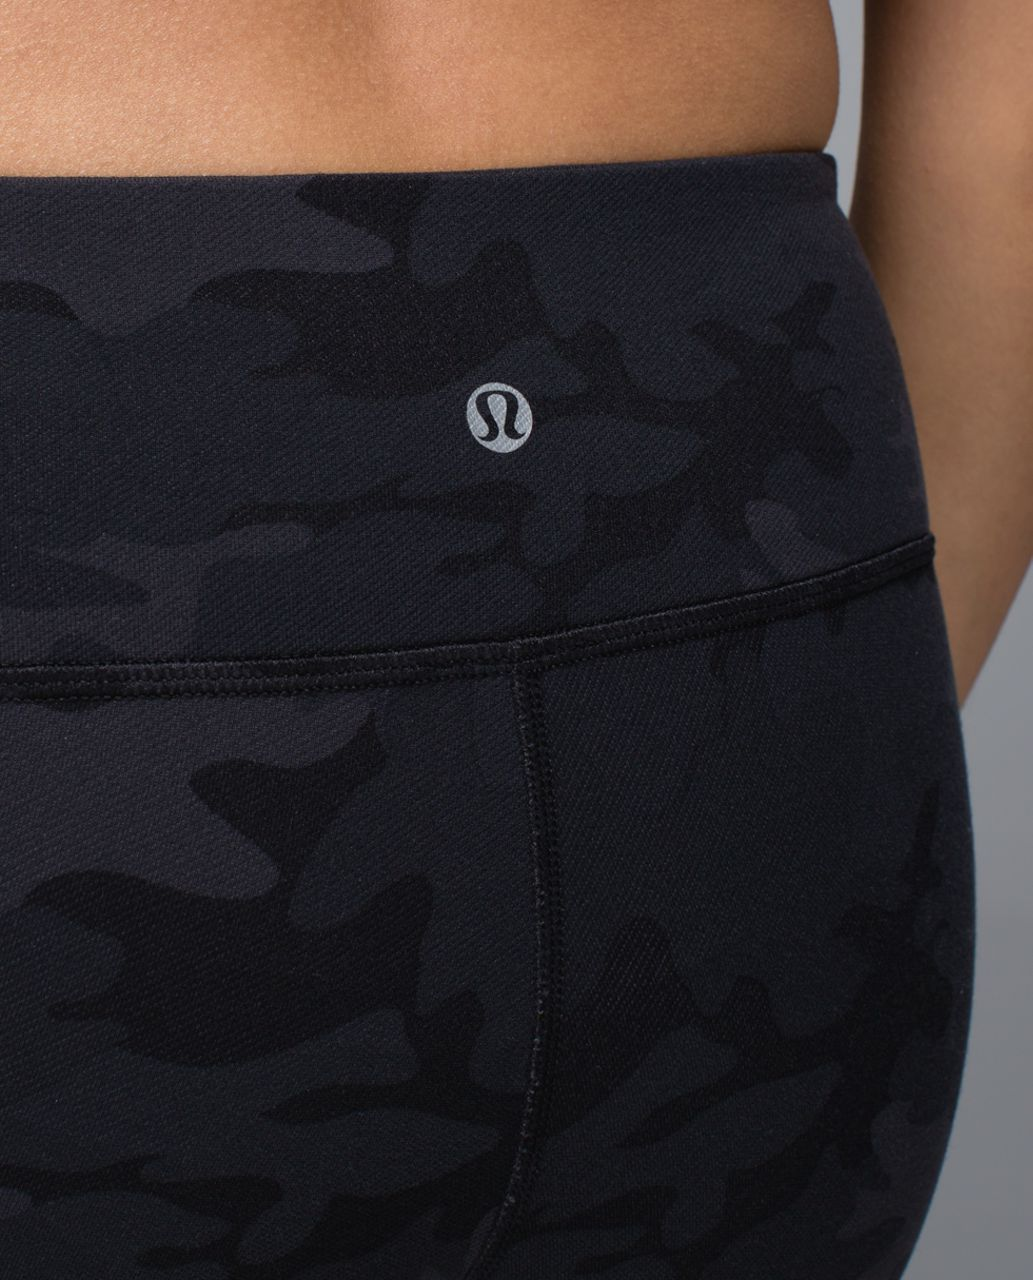 Lululemon Wunder Under Pant - Savasana Camo 20cm New Black / Soot / Black